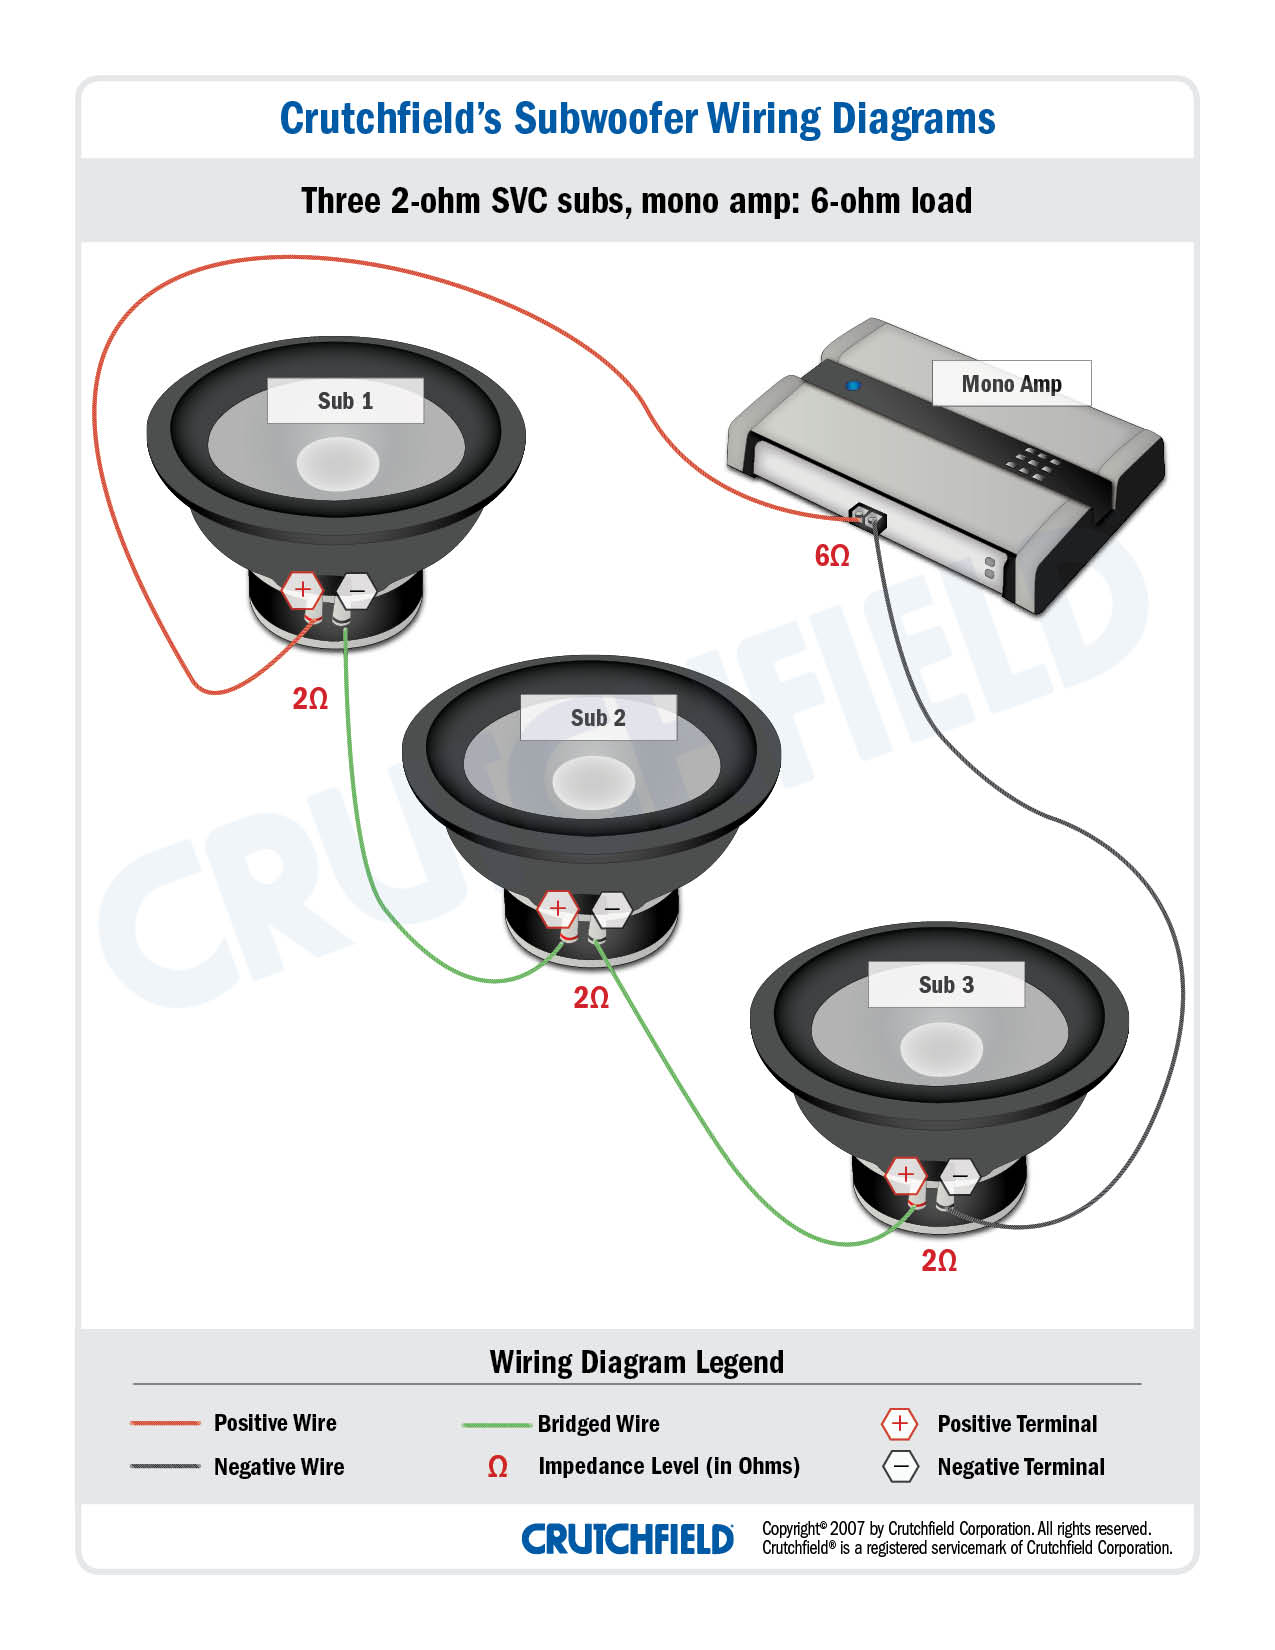 how to match subwoofers and amplifiers Car Subwoofer Wiring Diagram 2 Ohm Subwoofer Wiring Diagram